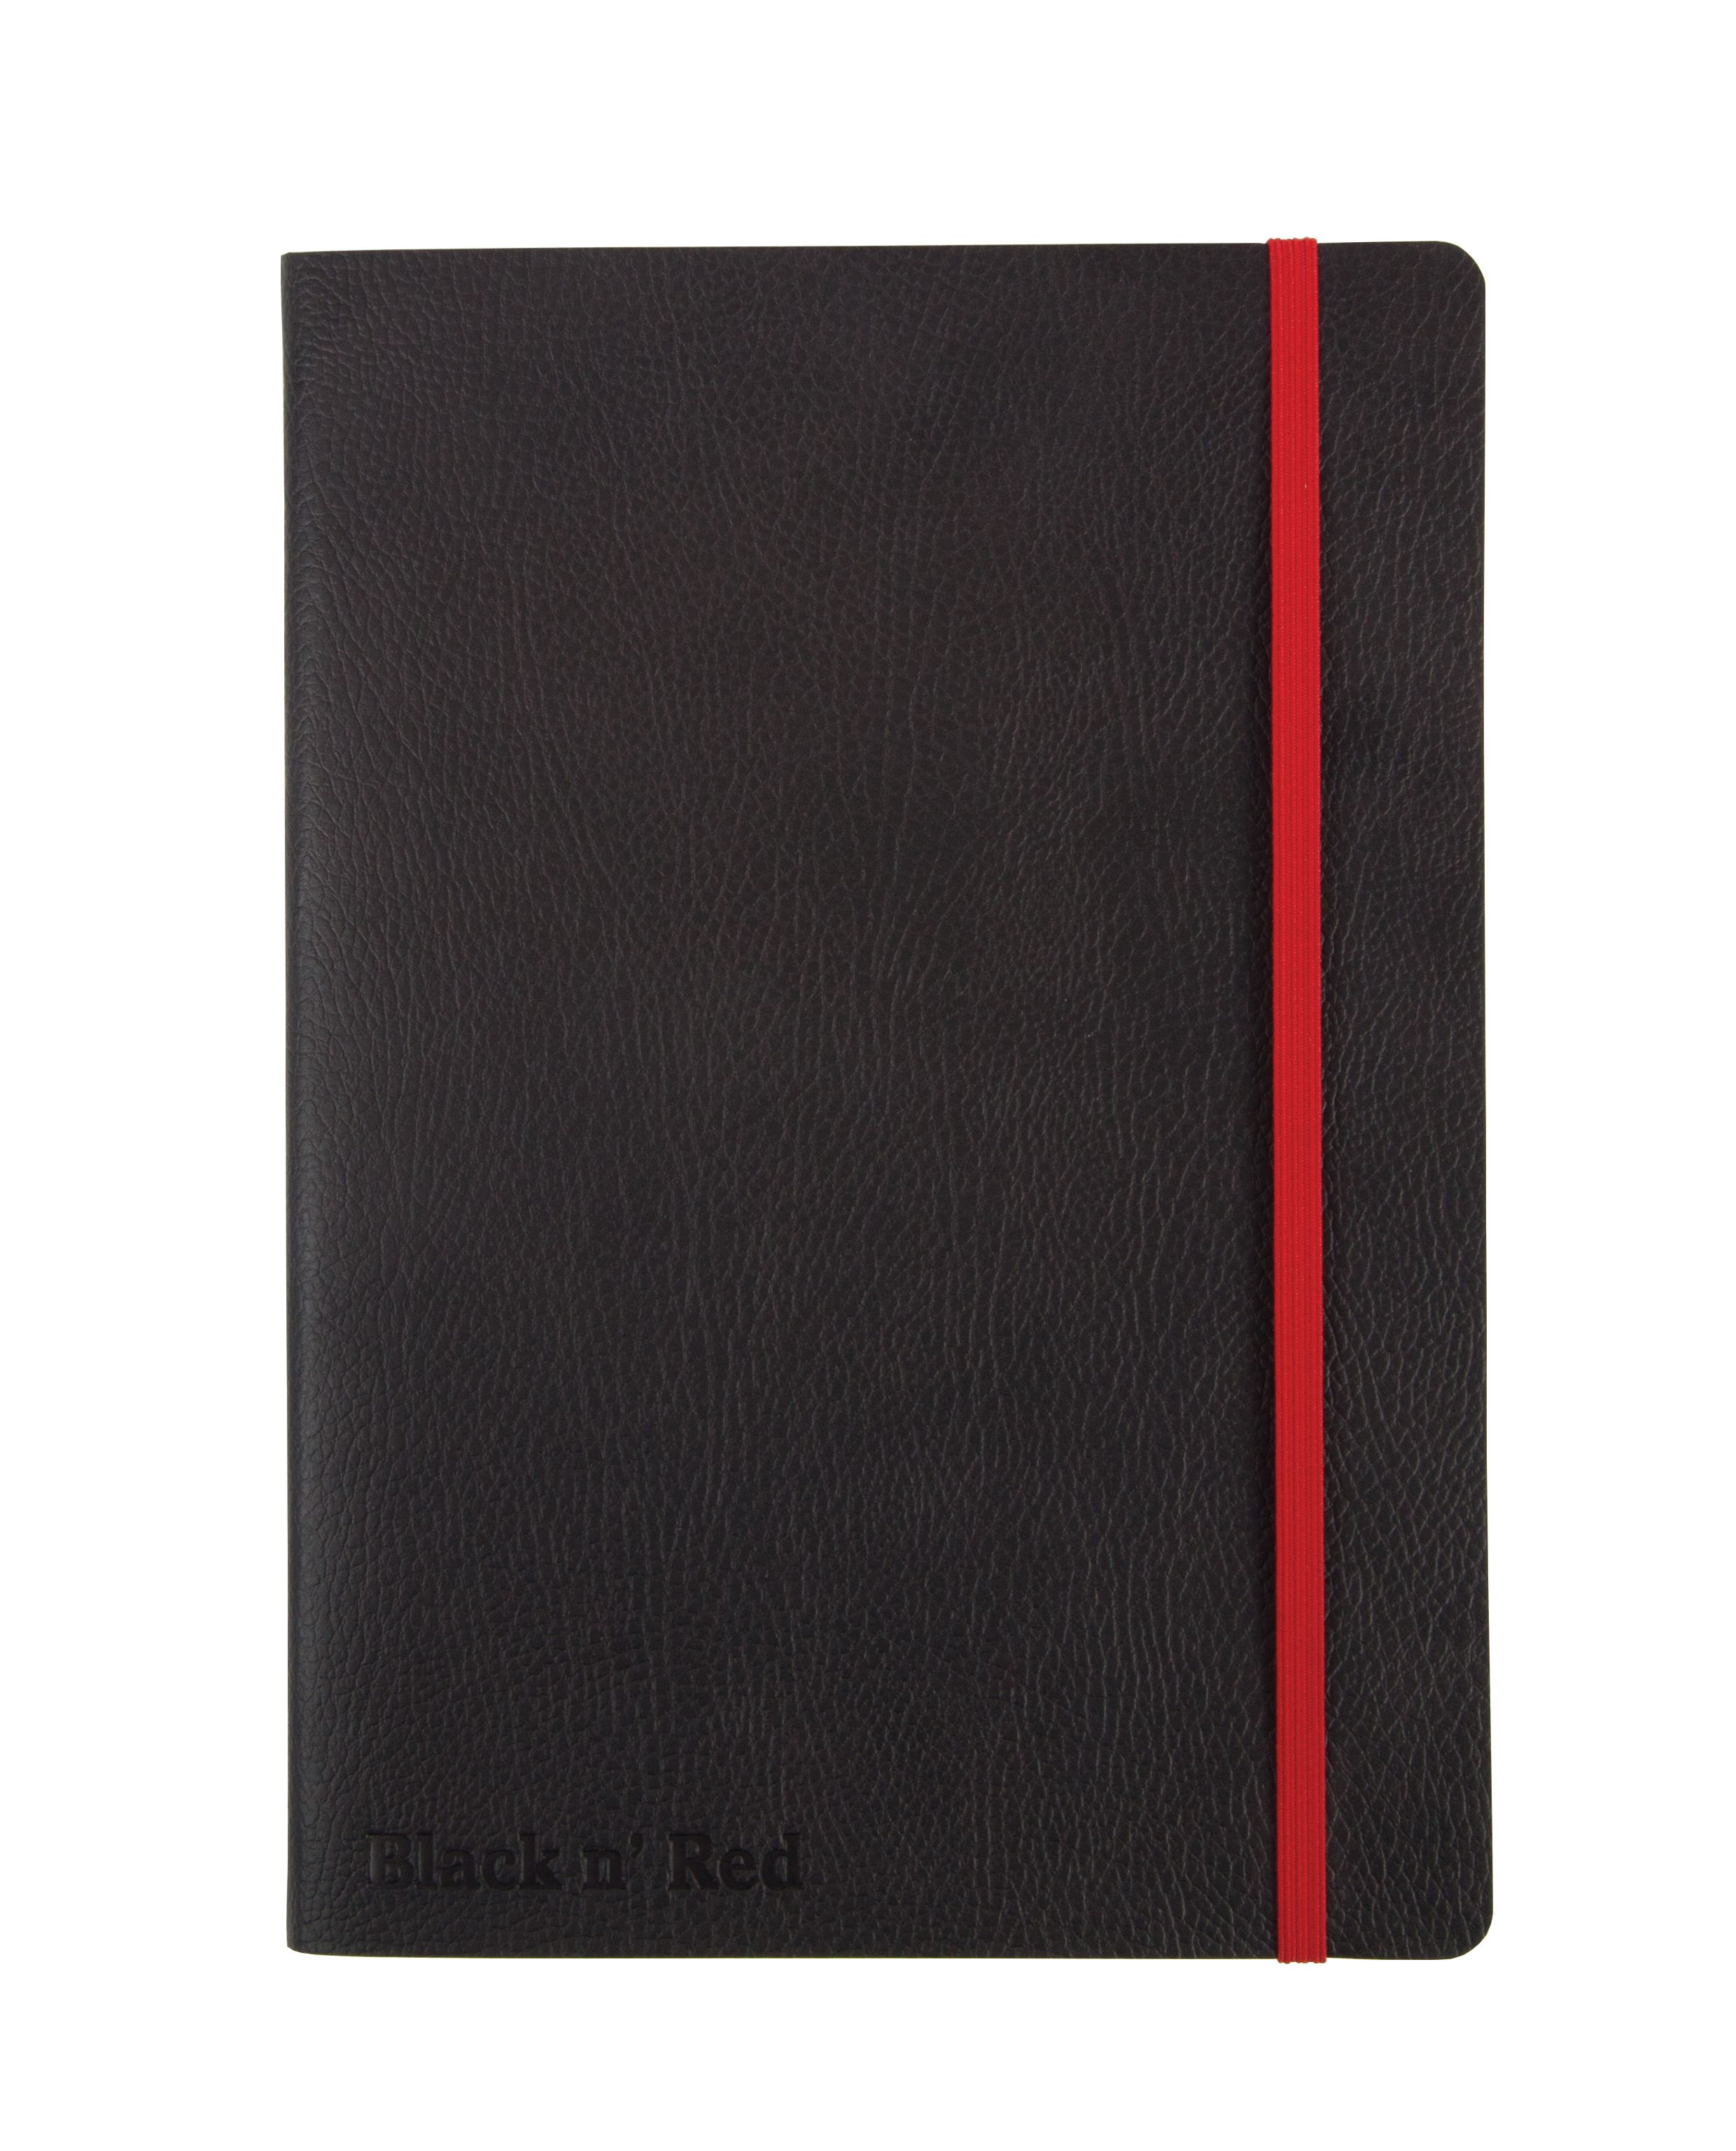 BnR Casebound Softcover Journal A5